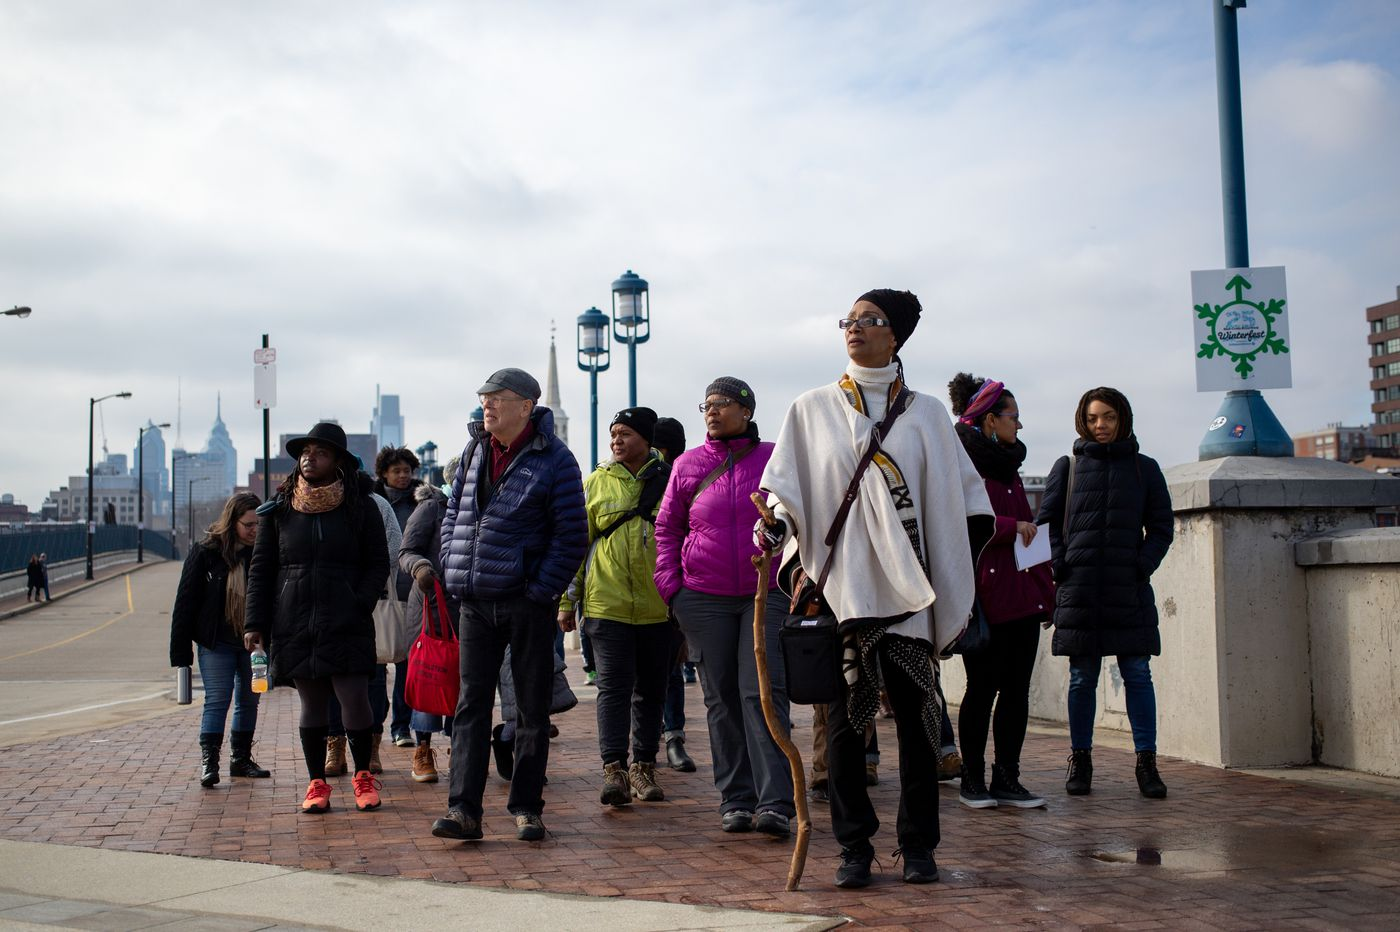 'It's part of our history': Storyteller leads walk exploring sites from Philly's slave trade